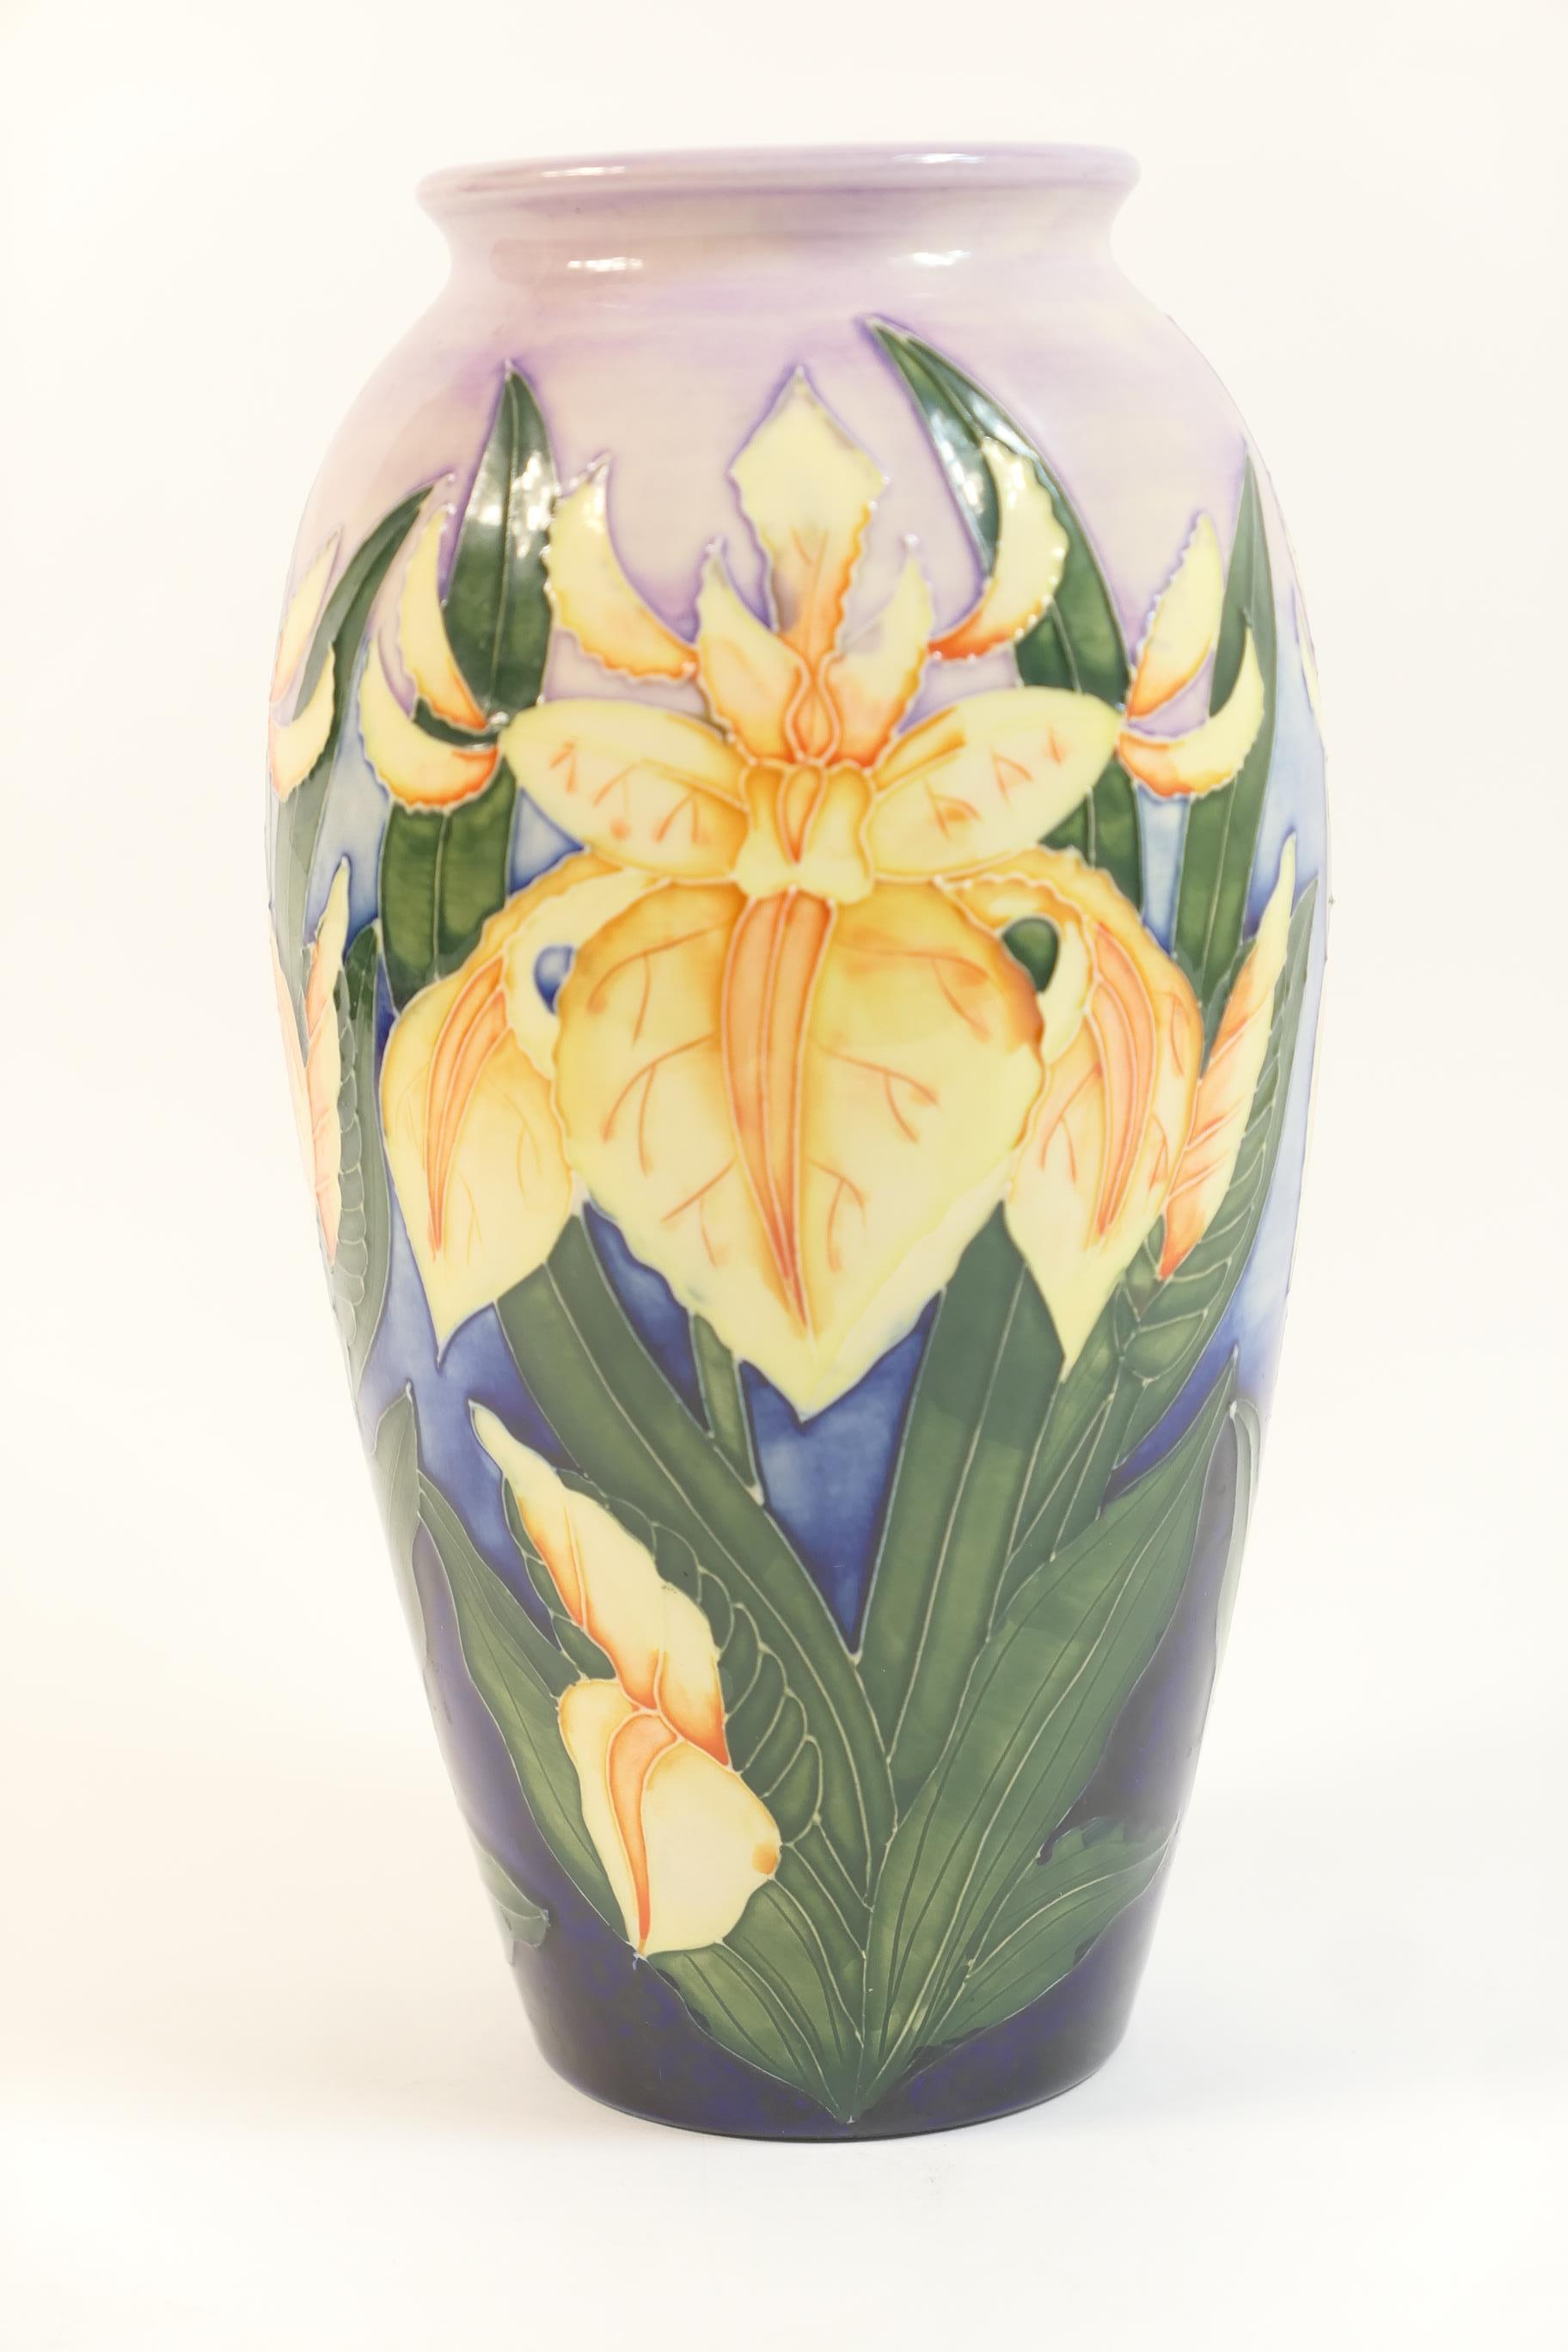 Lot 59 - Moorcroft Windrush pattern vase, circa 2000, ovoid form, impressed and painted marks, height 26cm